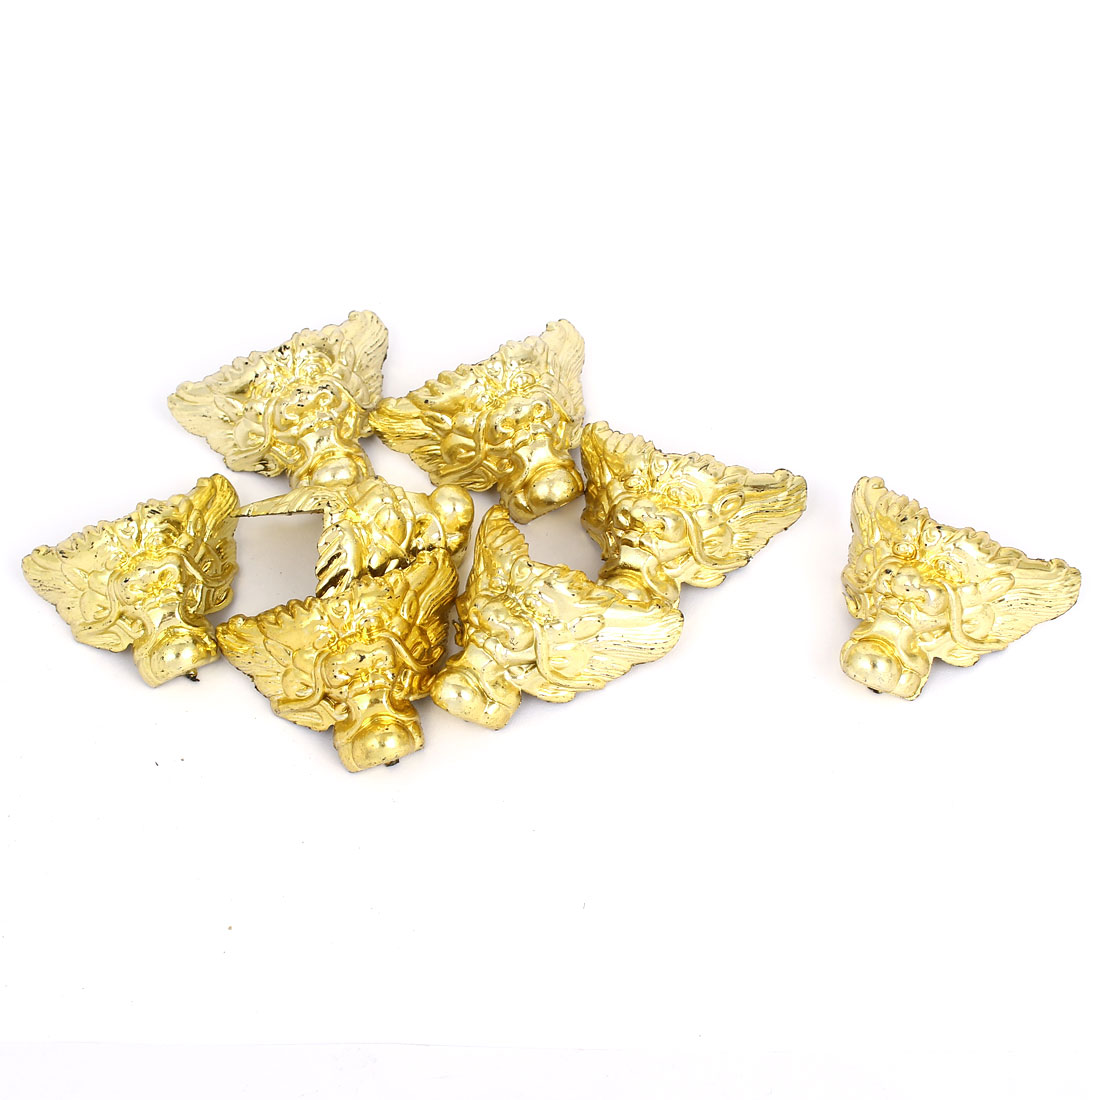 40mmx40mm Decorative Jewelry Gift Box Corner Protector Guard Gold Tone 8pcs